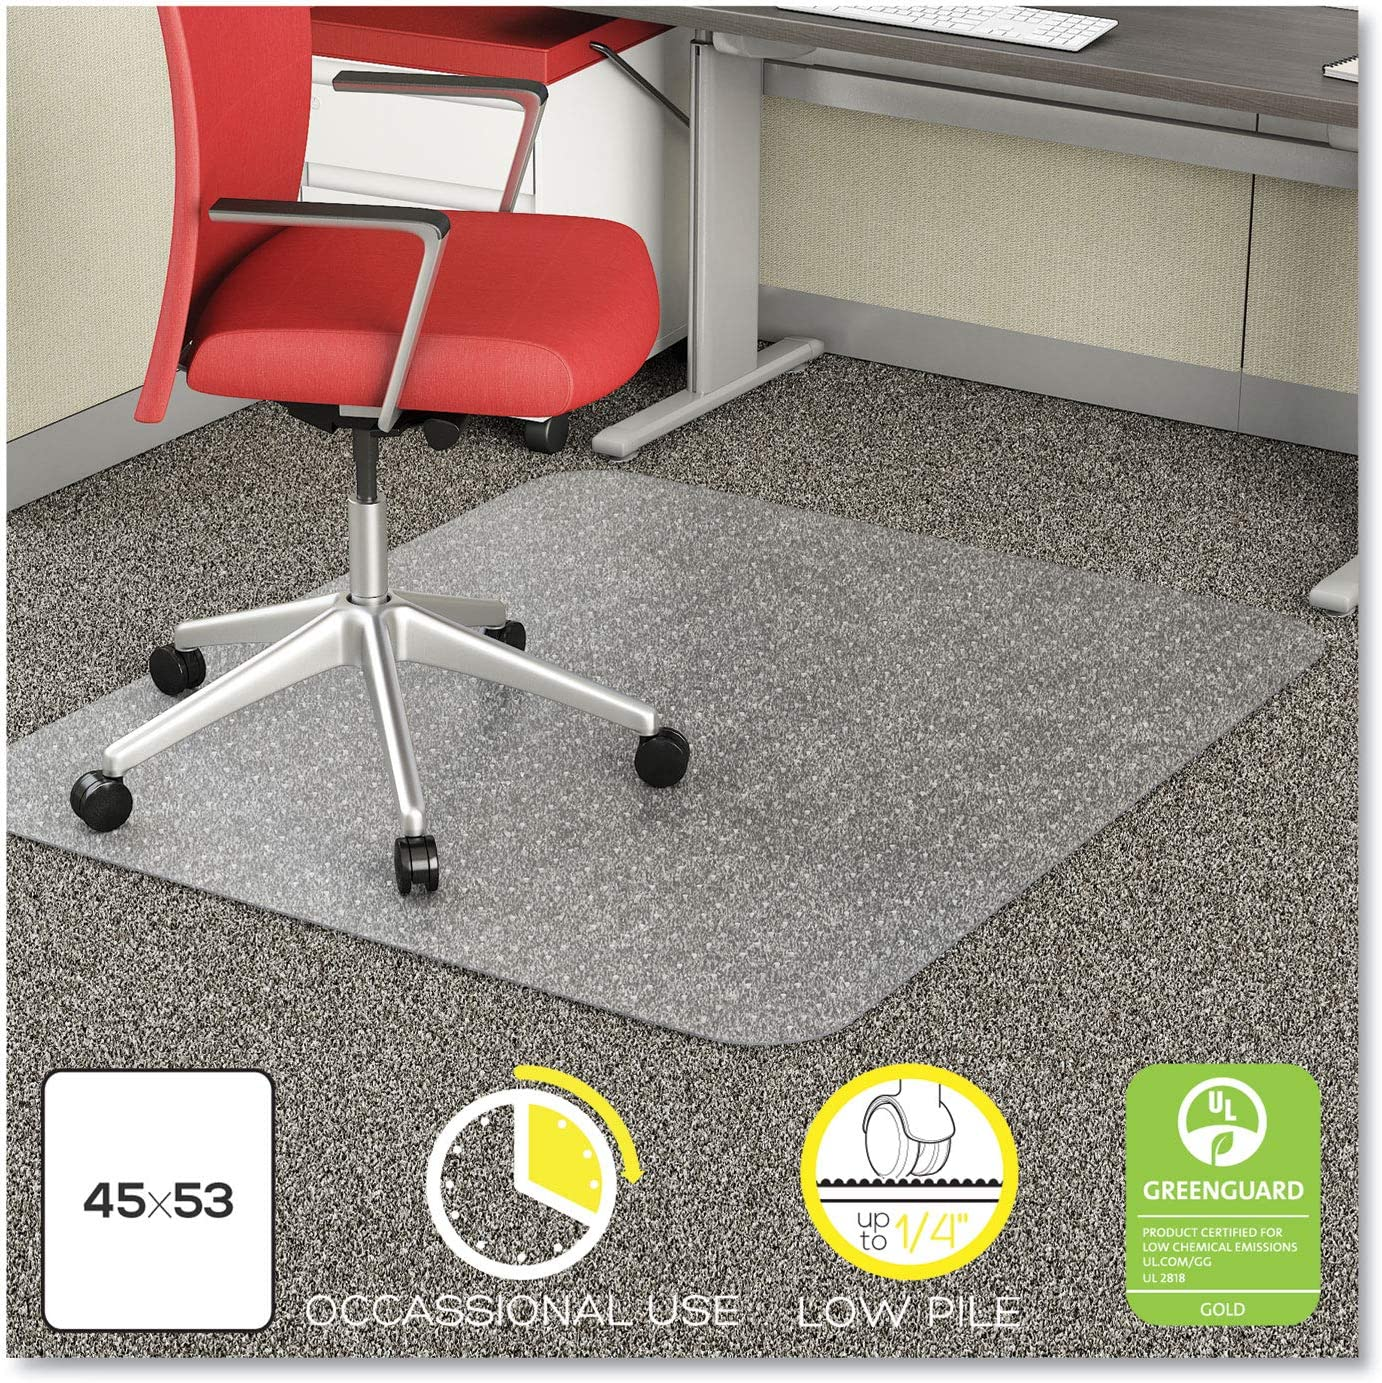 DEFCM11242COM – EconoMat Occasional Use Chair Mat for Low Pile Carpet